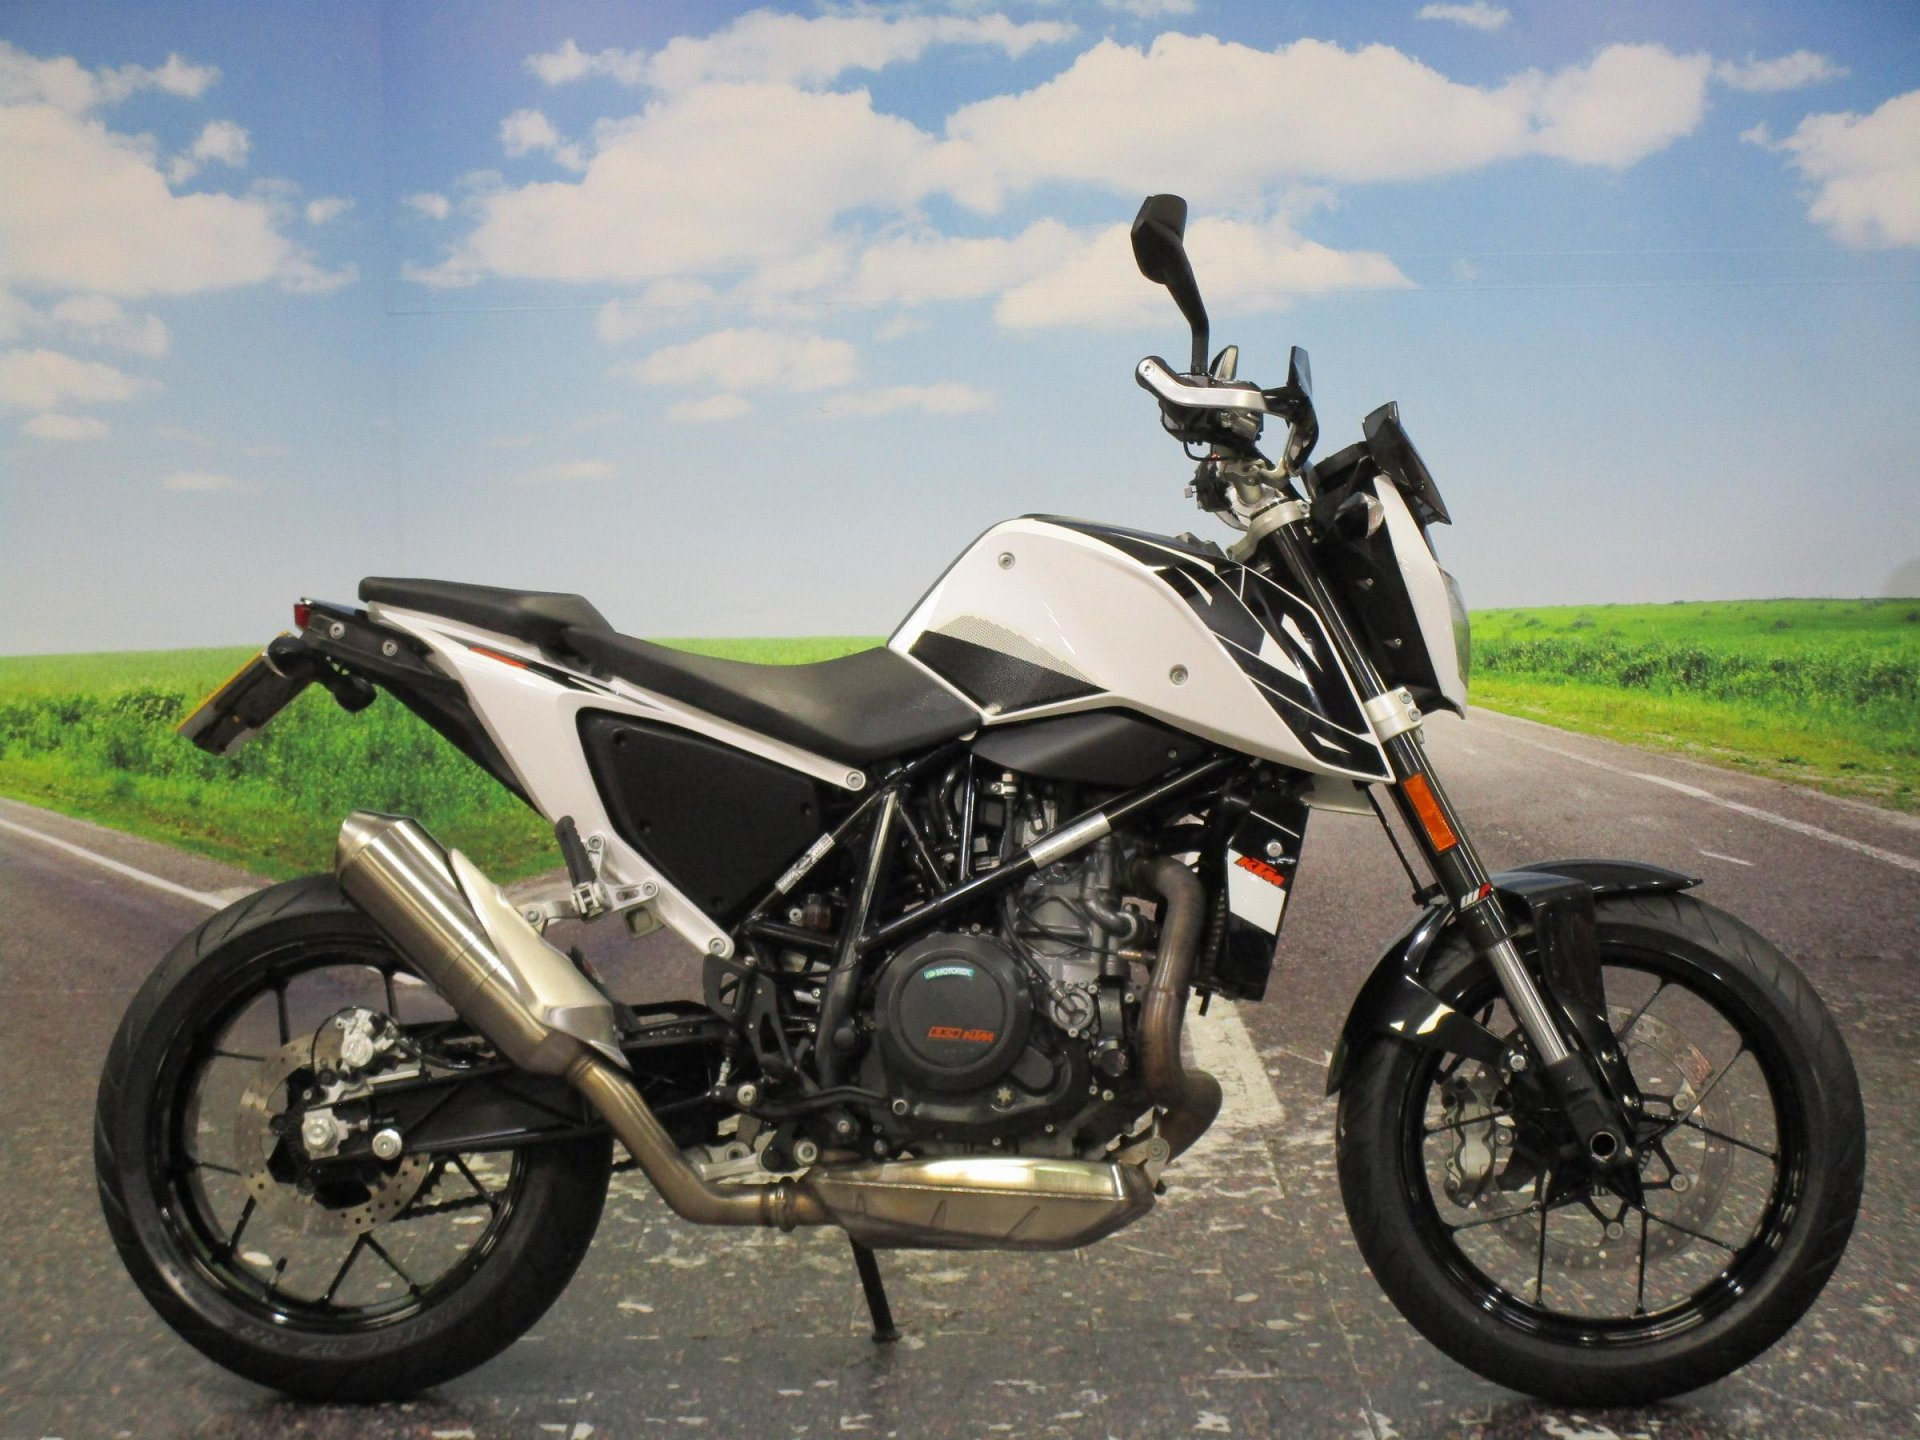 2016 KTM 690 Duke 16 for sale in South Wales